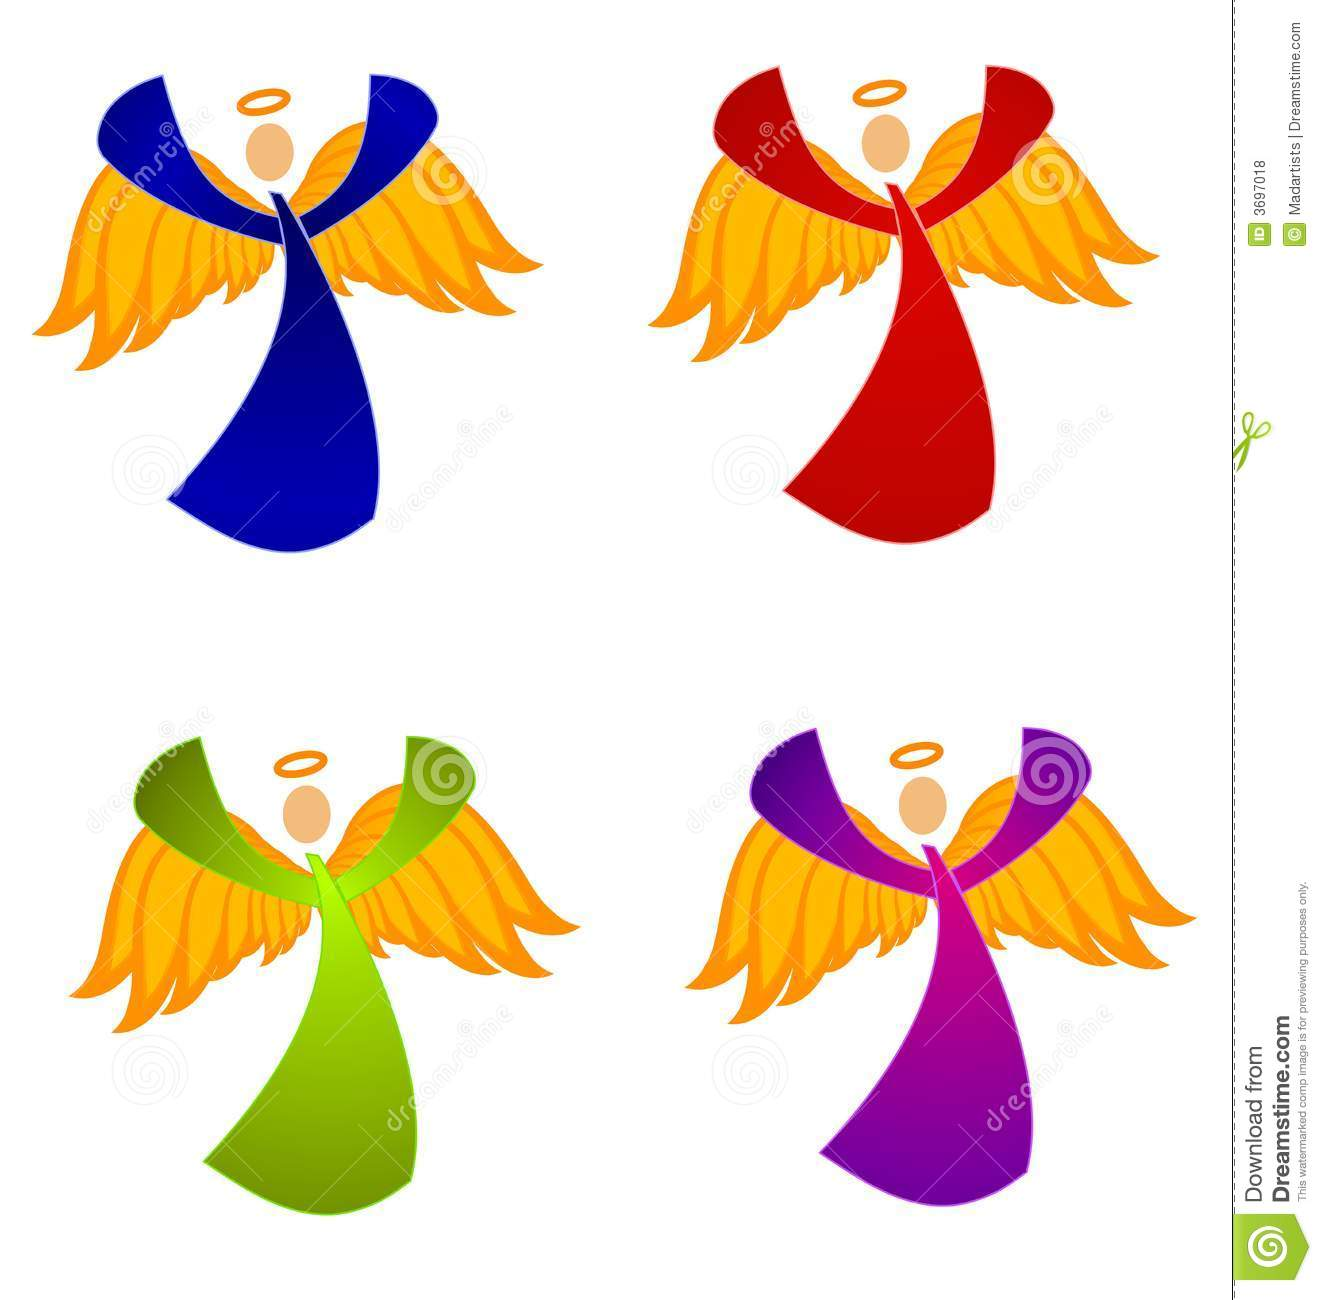 variety of christmas angels clip art stock illustration rh dreamstime com christmas angel clipart black and white free christmas angel clip art free printable